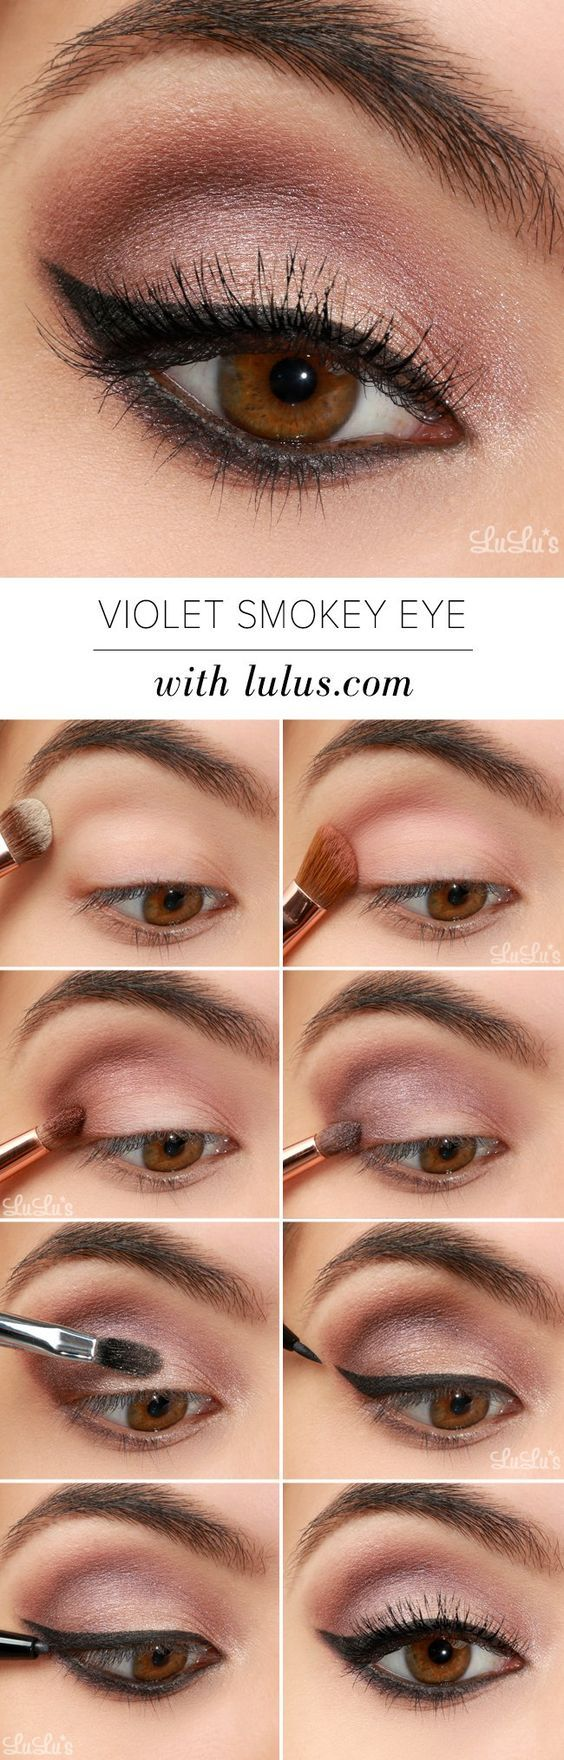 Violet smoke eye makeup tutorial | follow @sophieeleana